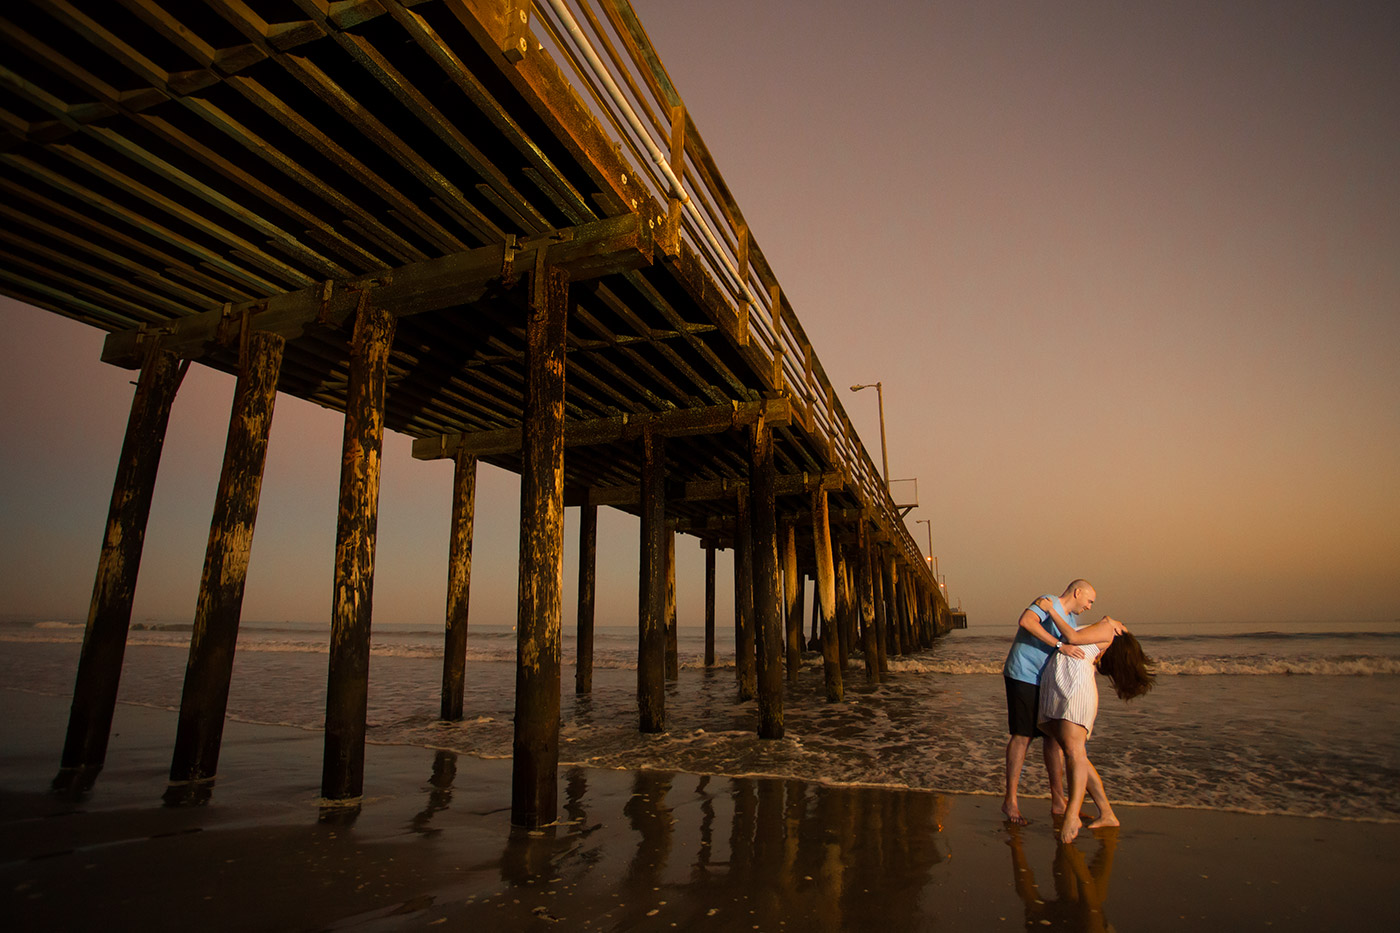 Engagement photo taken at Avila Beach in San Luis Obispo.